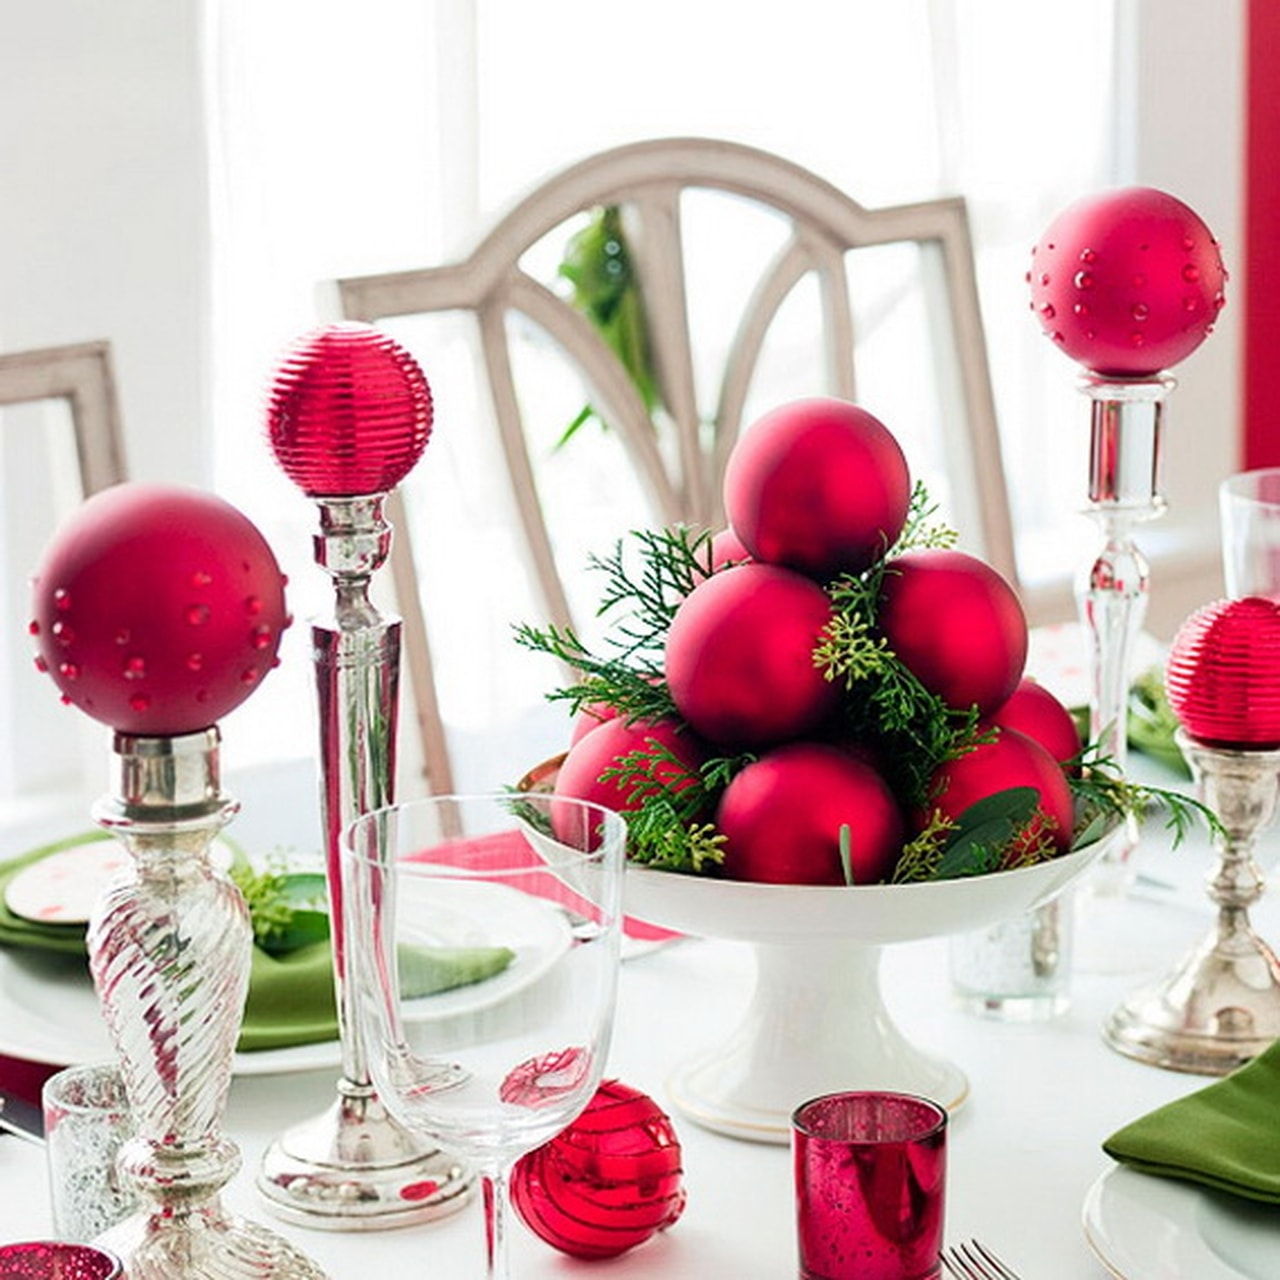 50 best diy christmas table decoration ideas for 2016. Black Bedroom Furniture Sets. Home Design Ideas